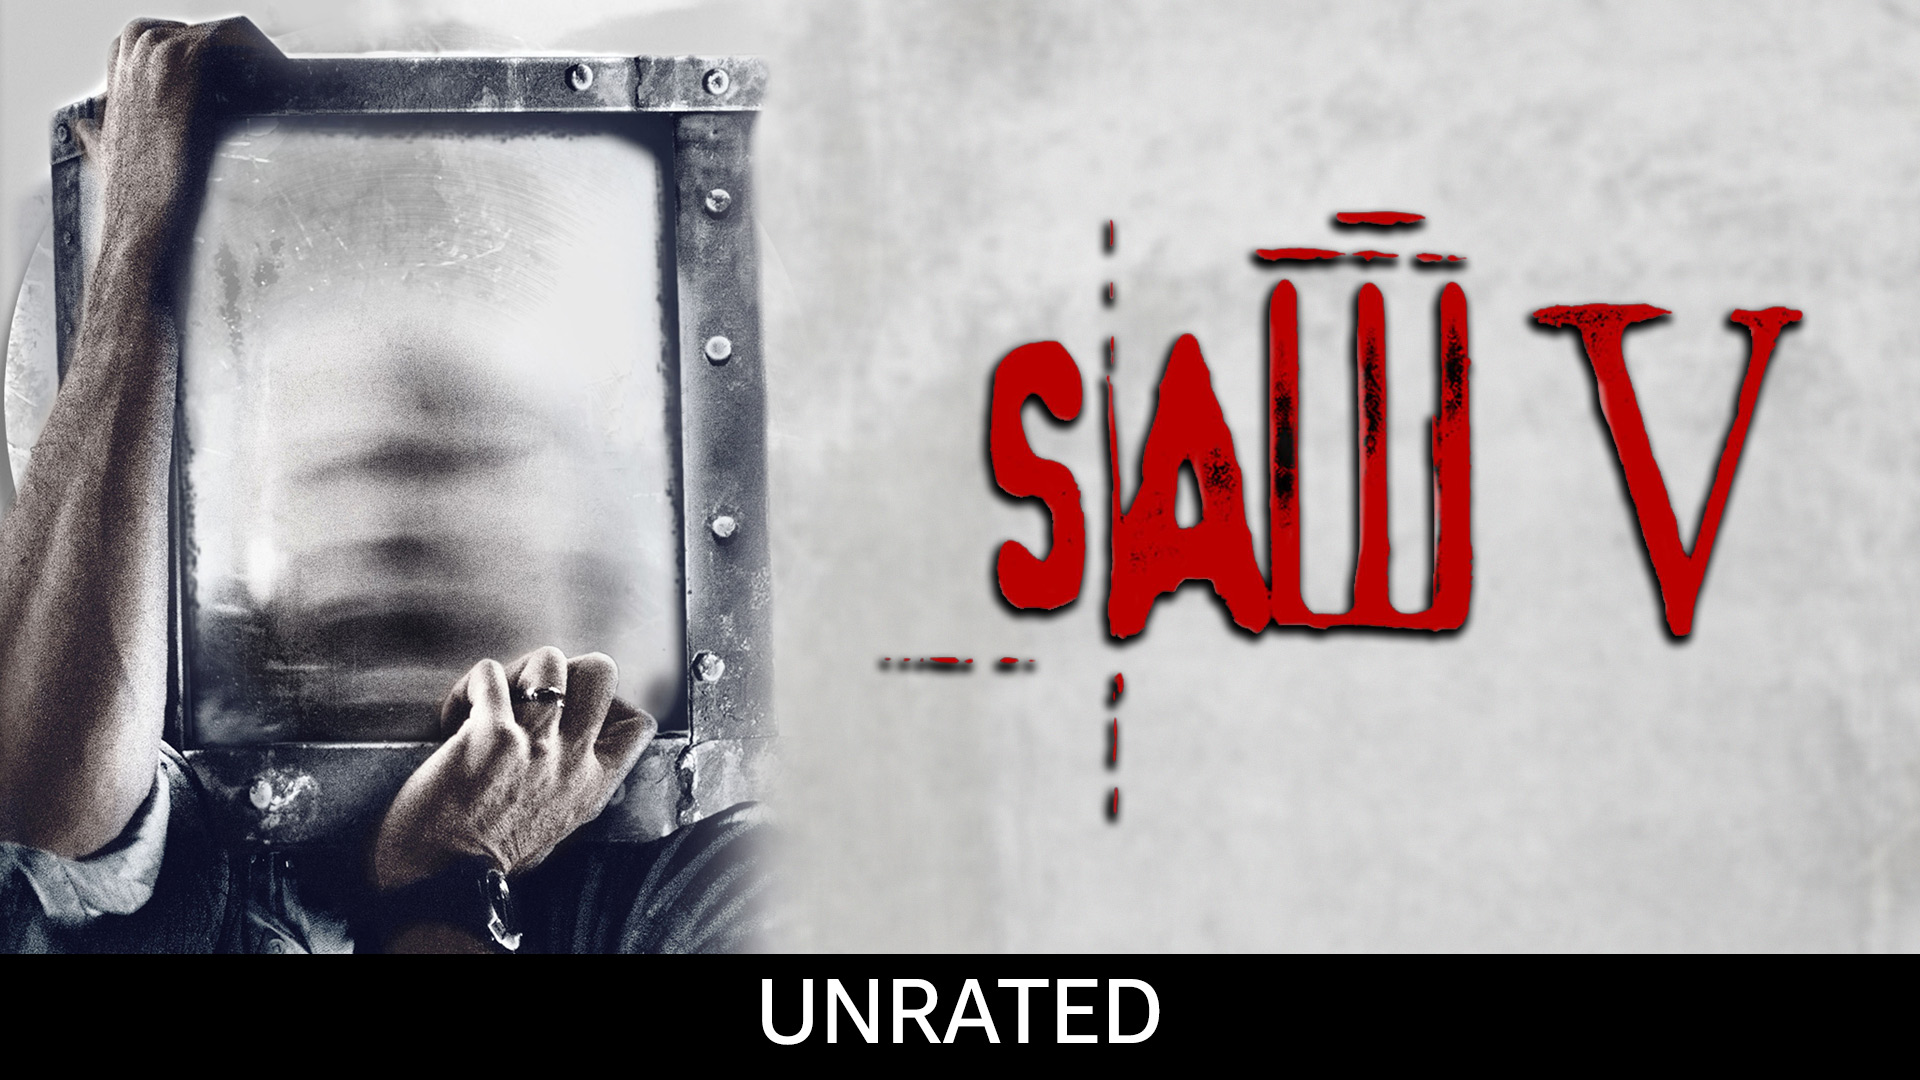 Saw 5 (Unrated)